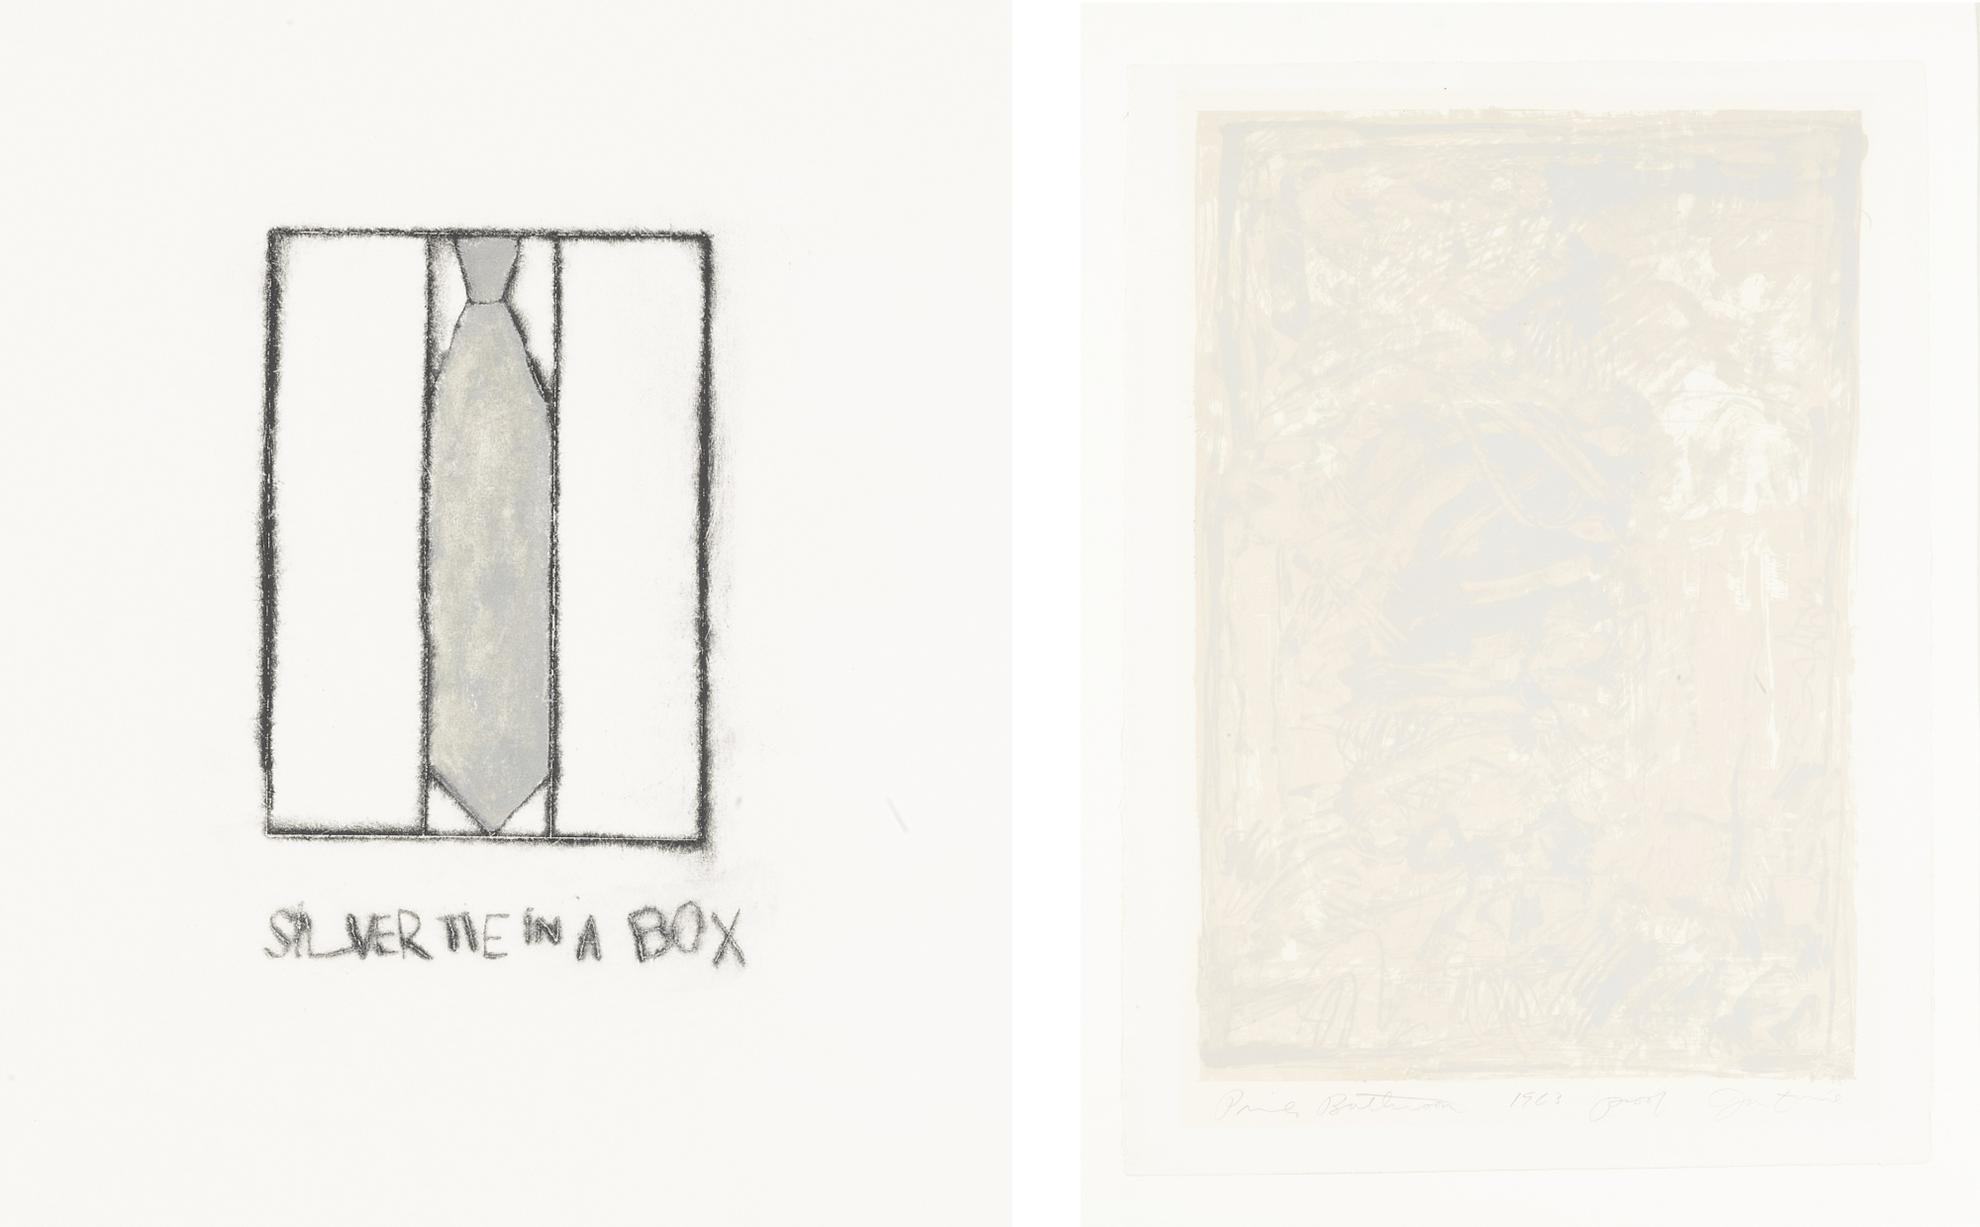 Jim Dine-Silver Tie In A Box; And Pink Bathroom (Galerie Mikro 9 & 21)-1961